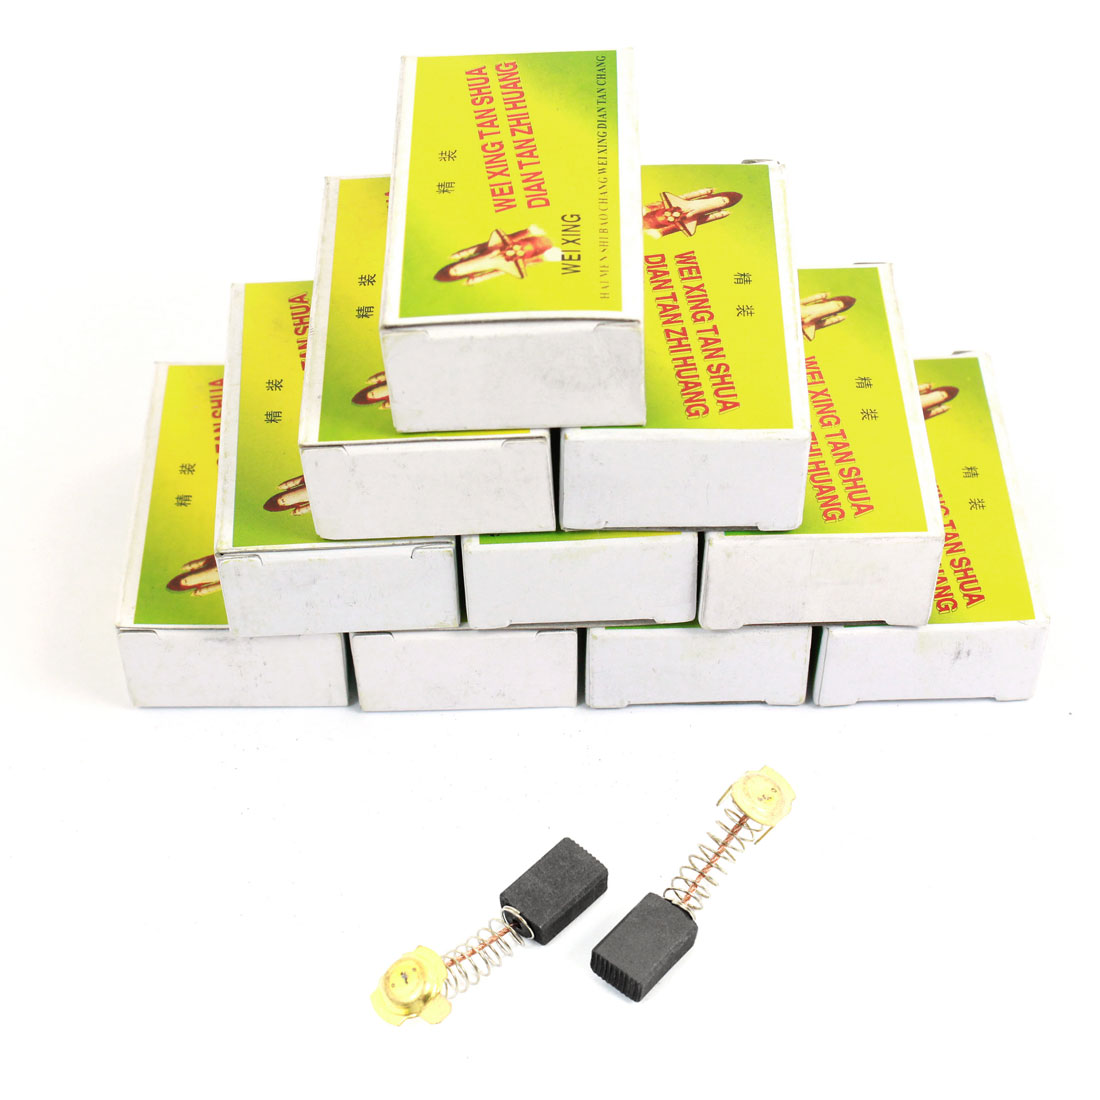 20 Pcs Spare Part Electric Drill Motor 16mm x 11mm x 7mm Carbon Brushes